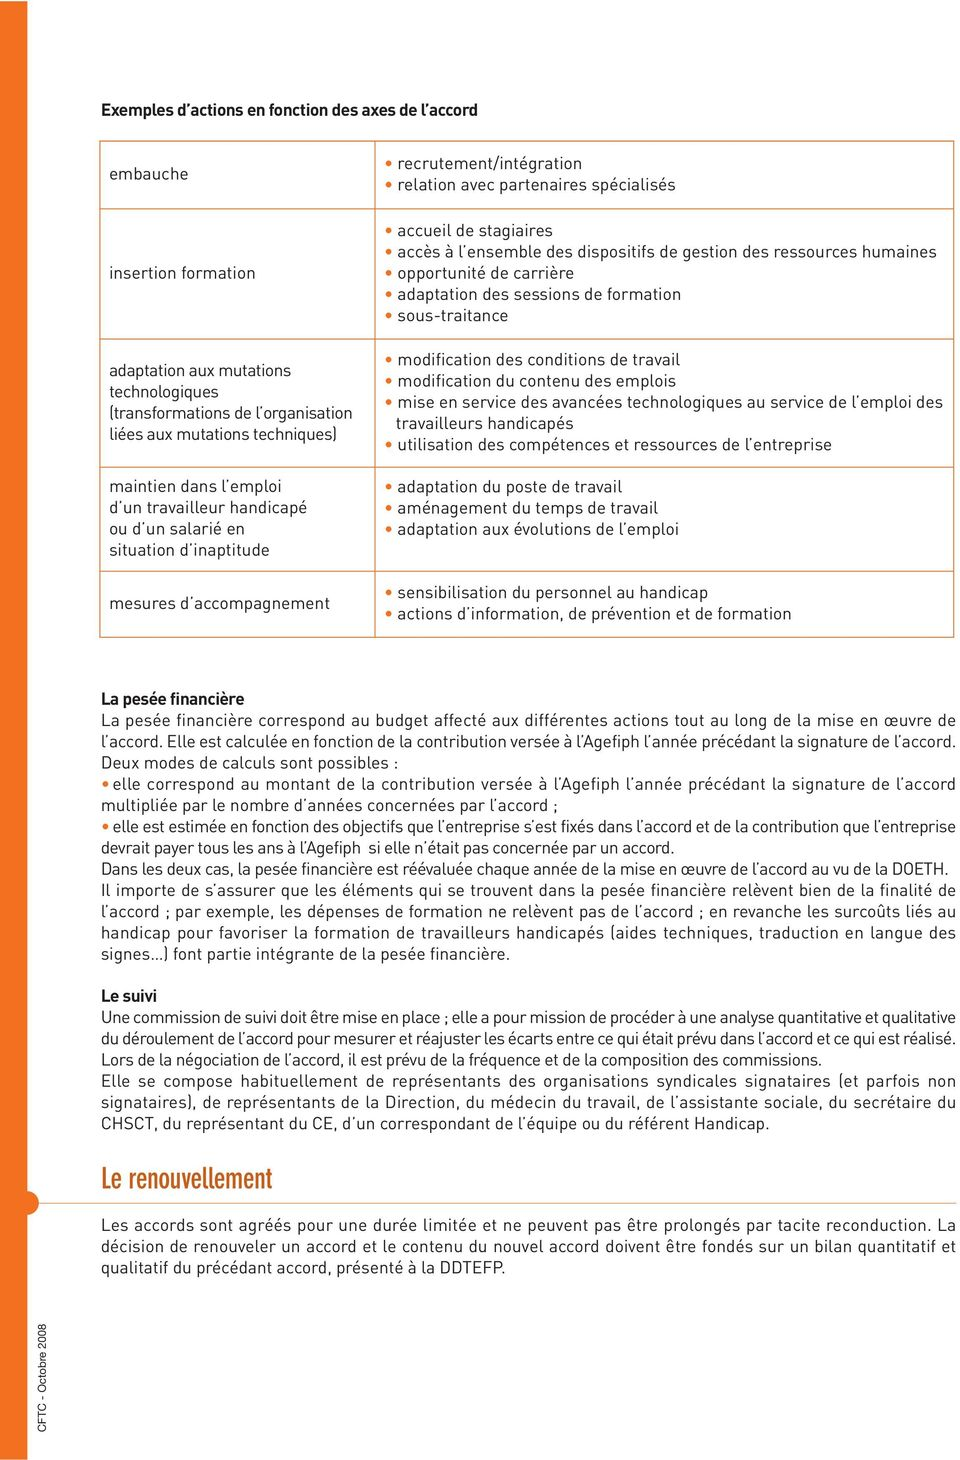 ensemble des dispositifs de gestion des ressources humaines opportunité de carrière adaptation des sessions de formation sous-traitance modification des conditions de travail modification du contenu